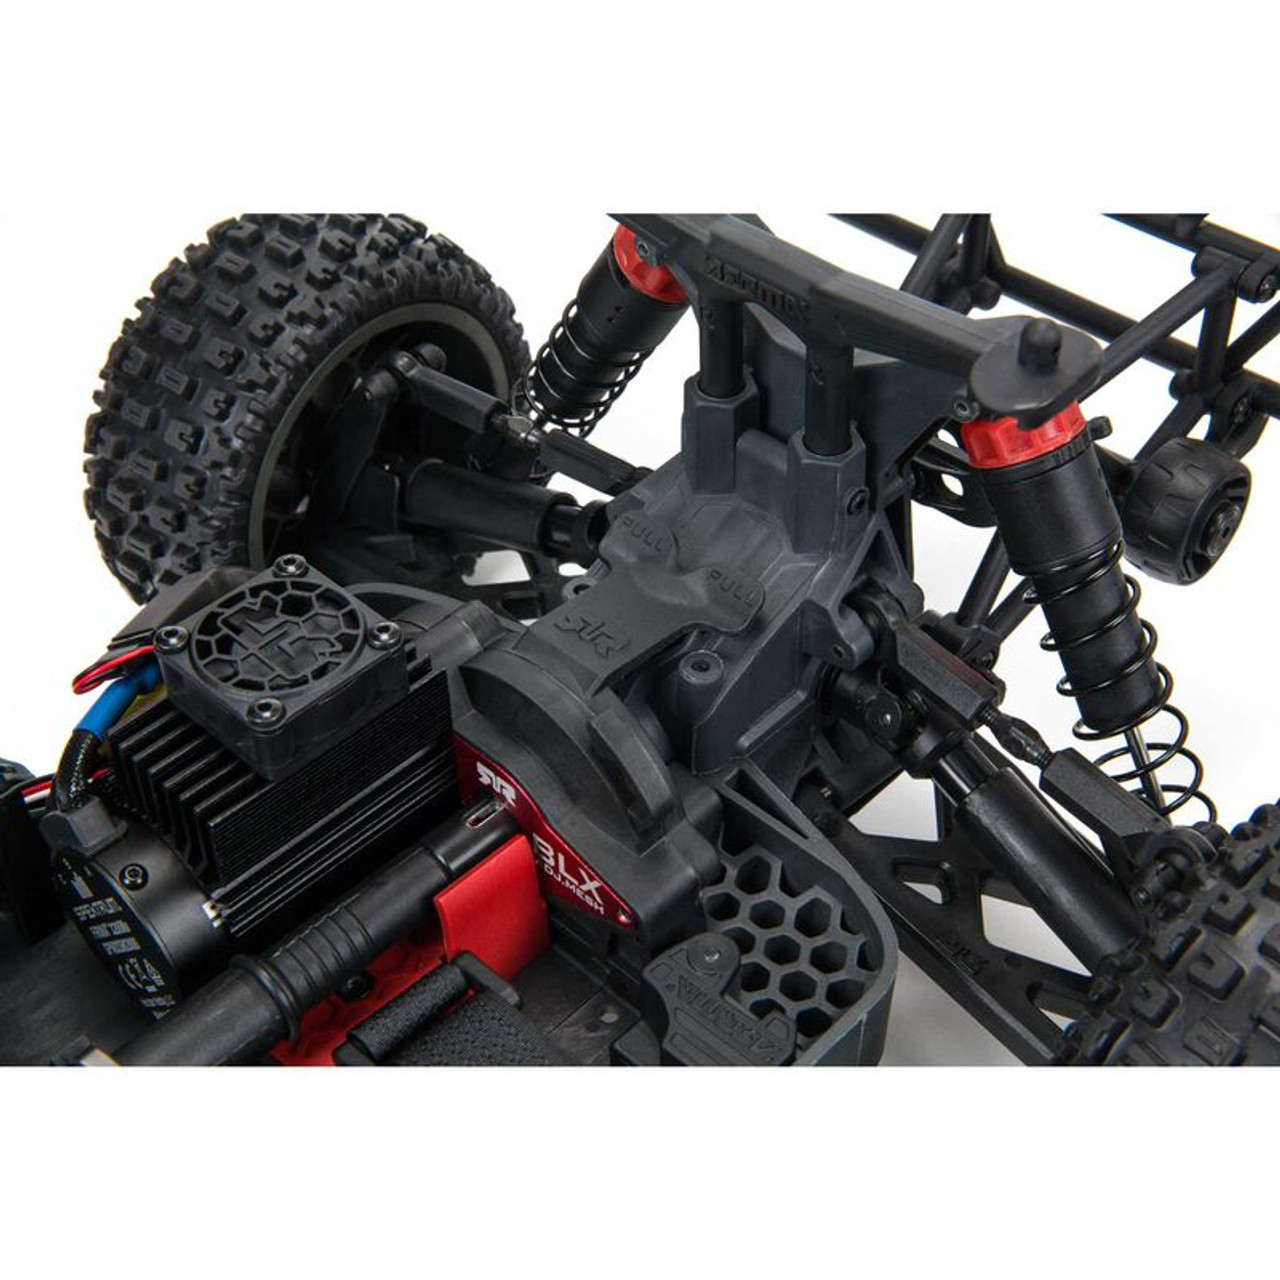 Arrma Senton 4X4 V3 3S BLX 1/10 RTR Brushless Short Course Truck (Red) w/Spektrum SLT3 2.4GHz Radio